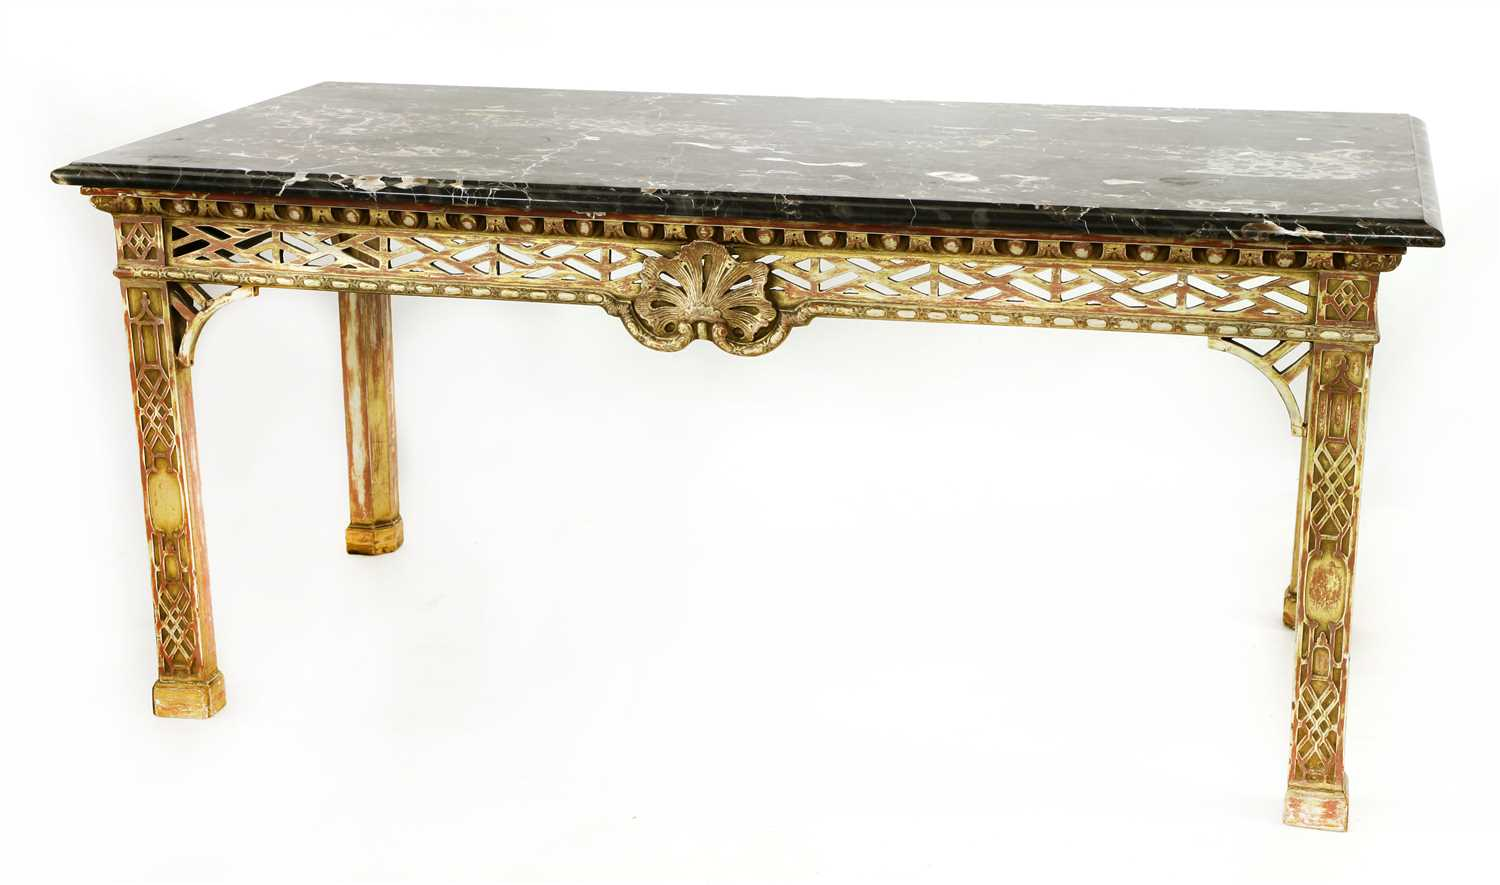 Lot 9-A Chippendale-style giltwood console table